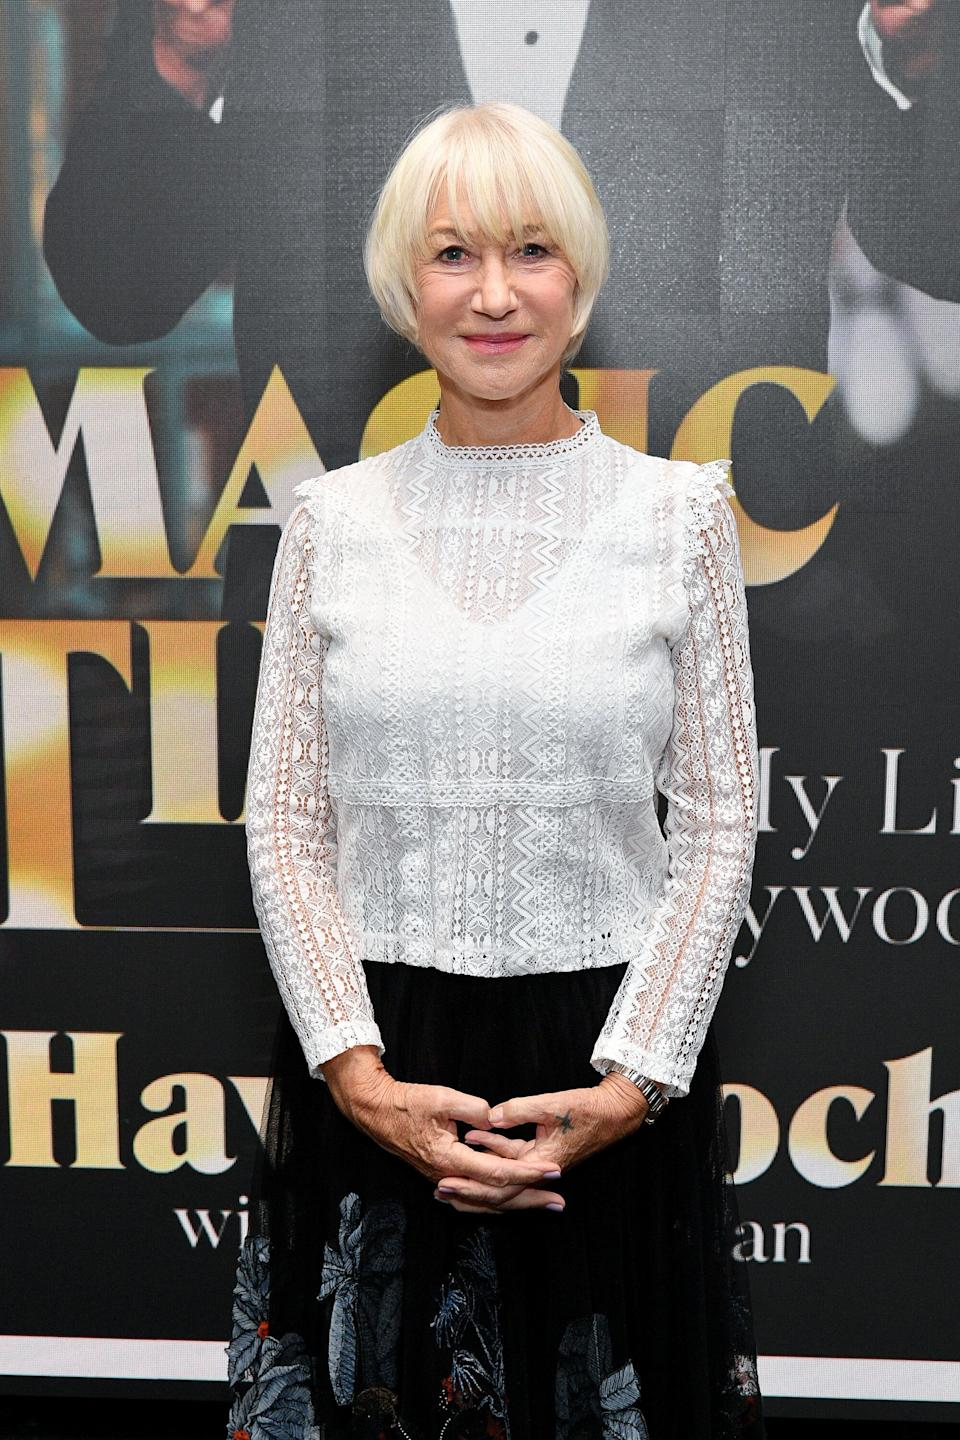 Dame Helen Mirren (Photo: Dia Dipasupil via Getty Images)